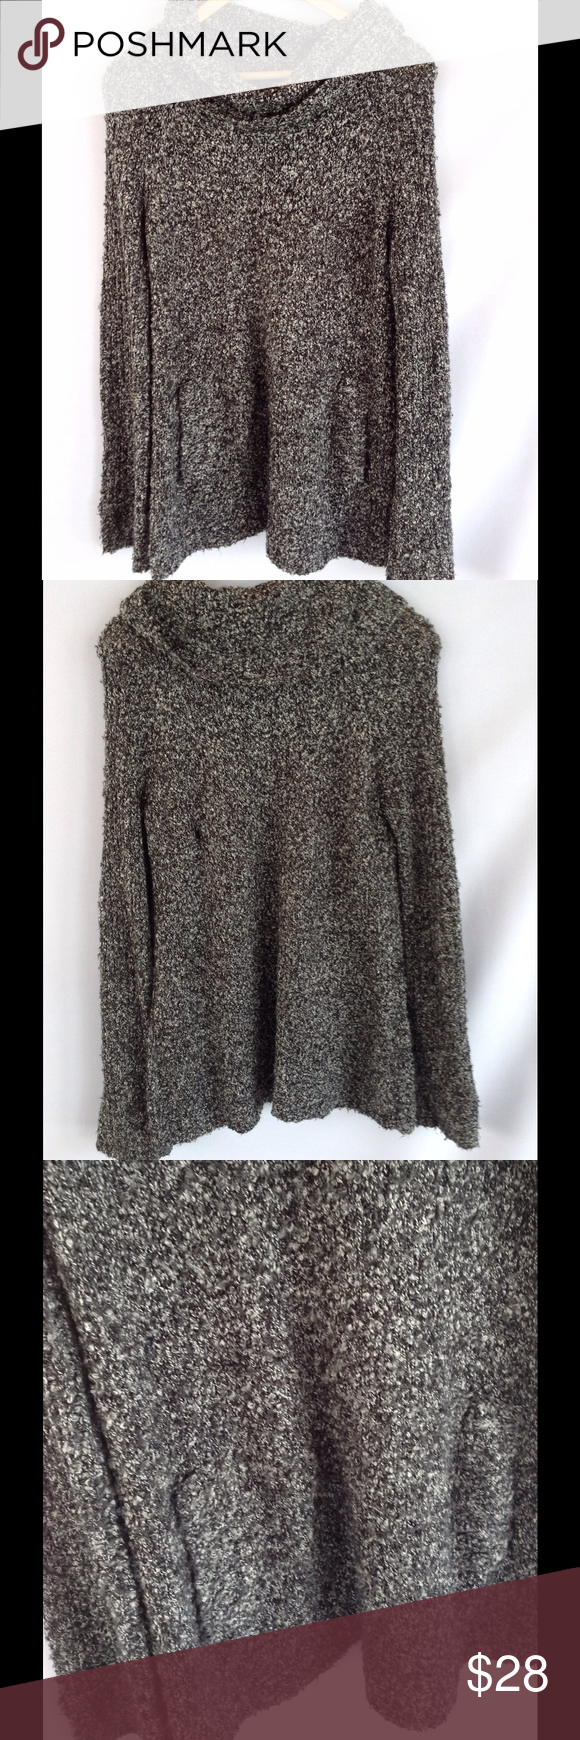 Daisy Fuentes Pepper Cowl Neck Sweater w/ Pockets Gorgeous black ...